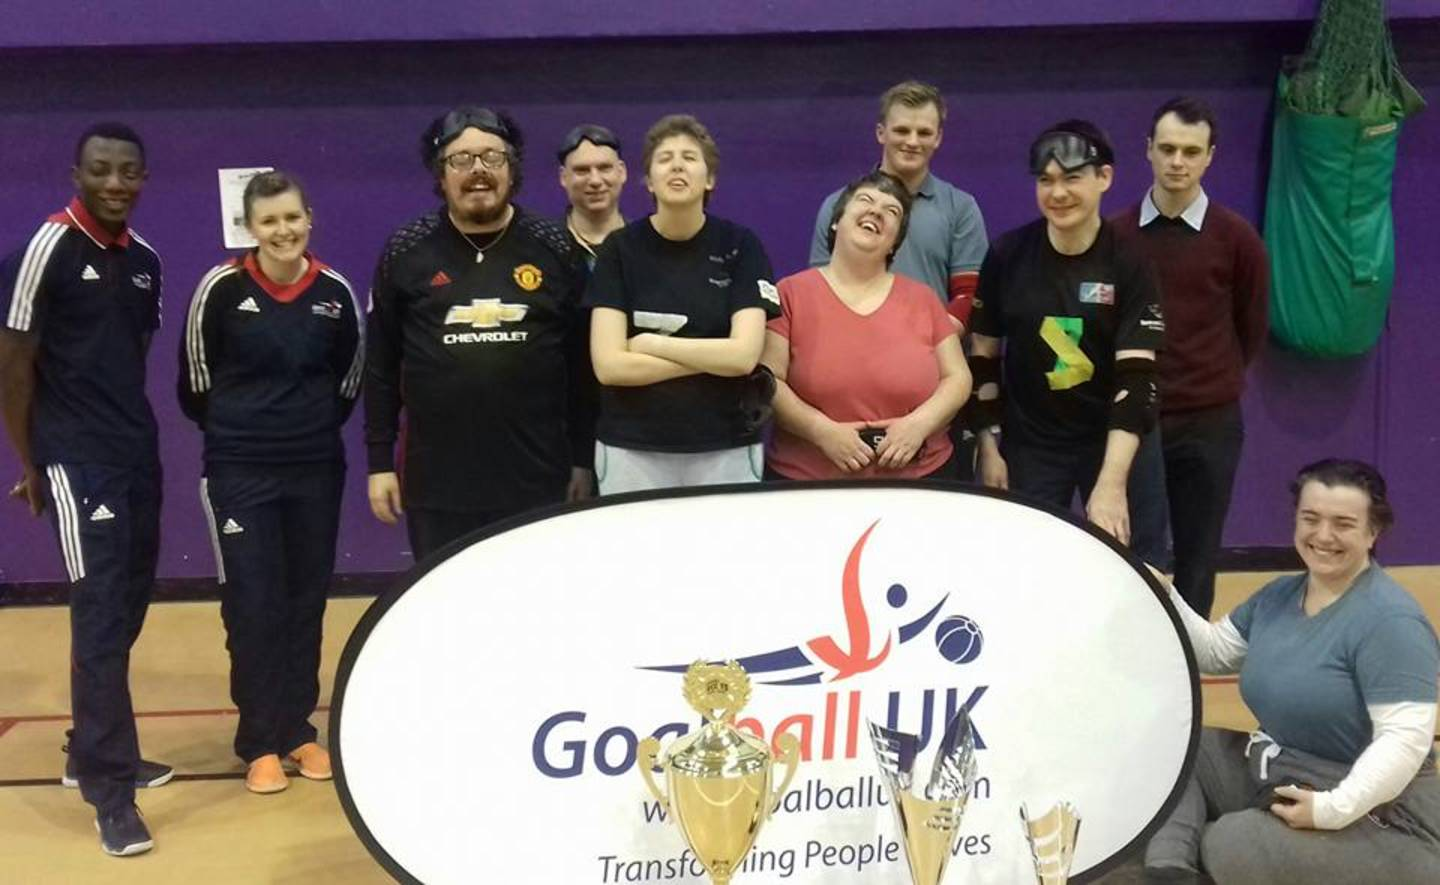 The Beacon Bullets goalball team during the GB Roadshow, where GB Women's Assistant Coach Becky Ashworth and GB Men's player Caleb Nanevie came to visit with the Euro Championships Trophies.